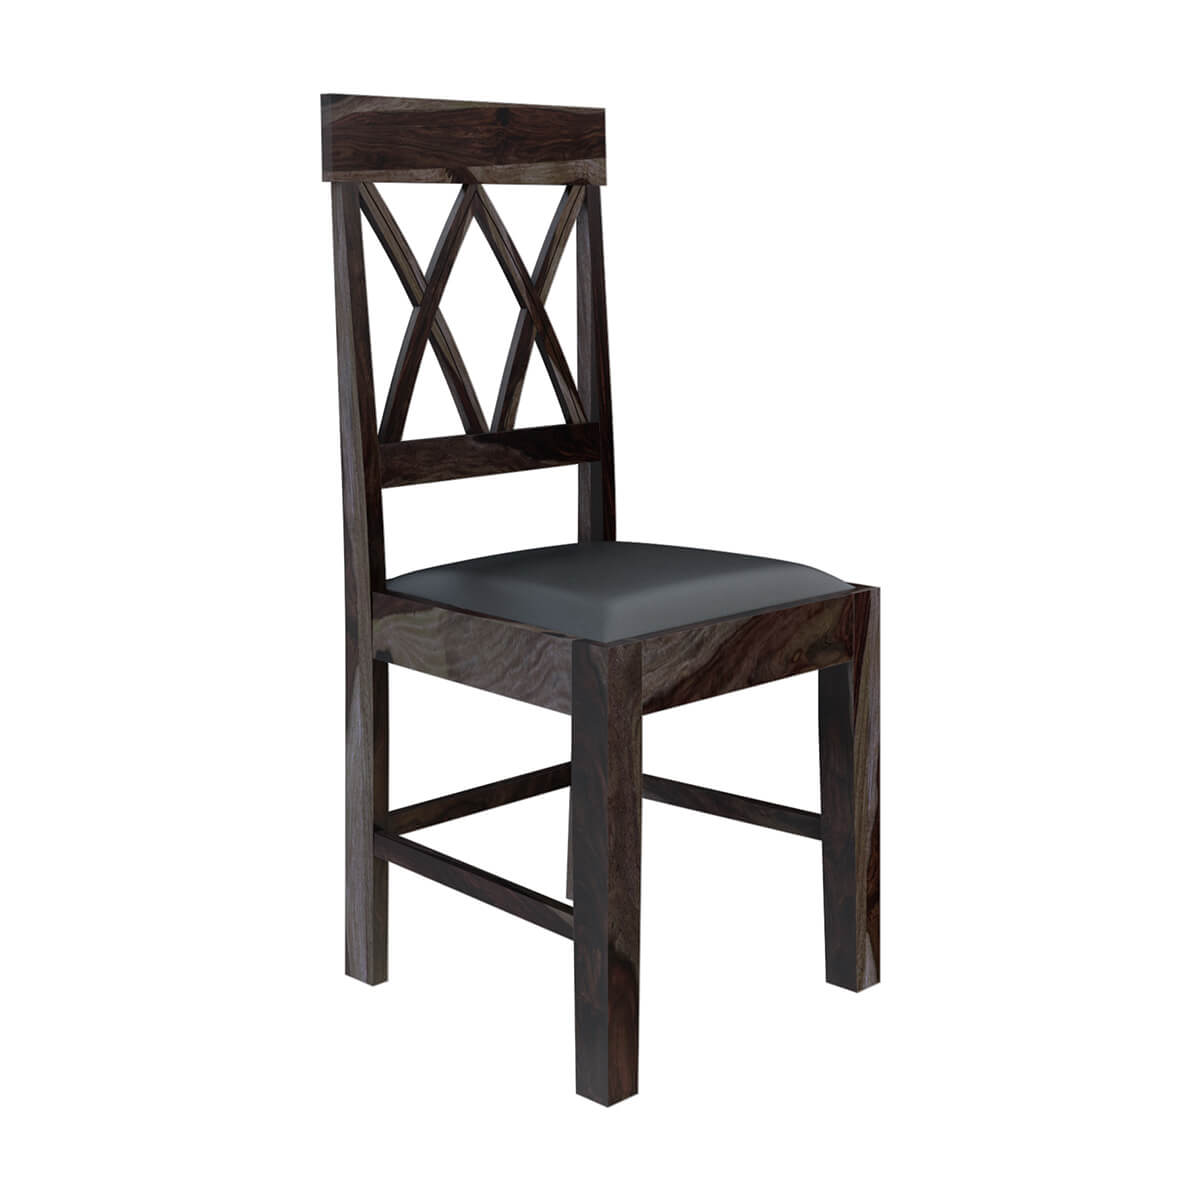 Sheraton pineapple back solid wood leather rustic dining for Wood leather dining chairs